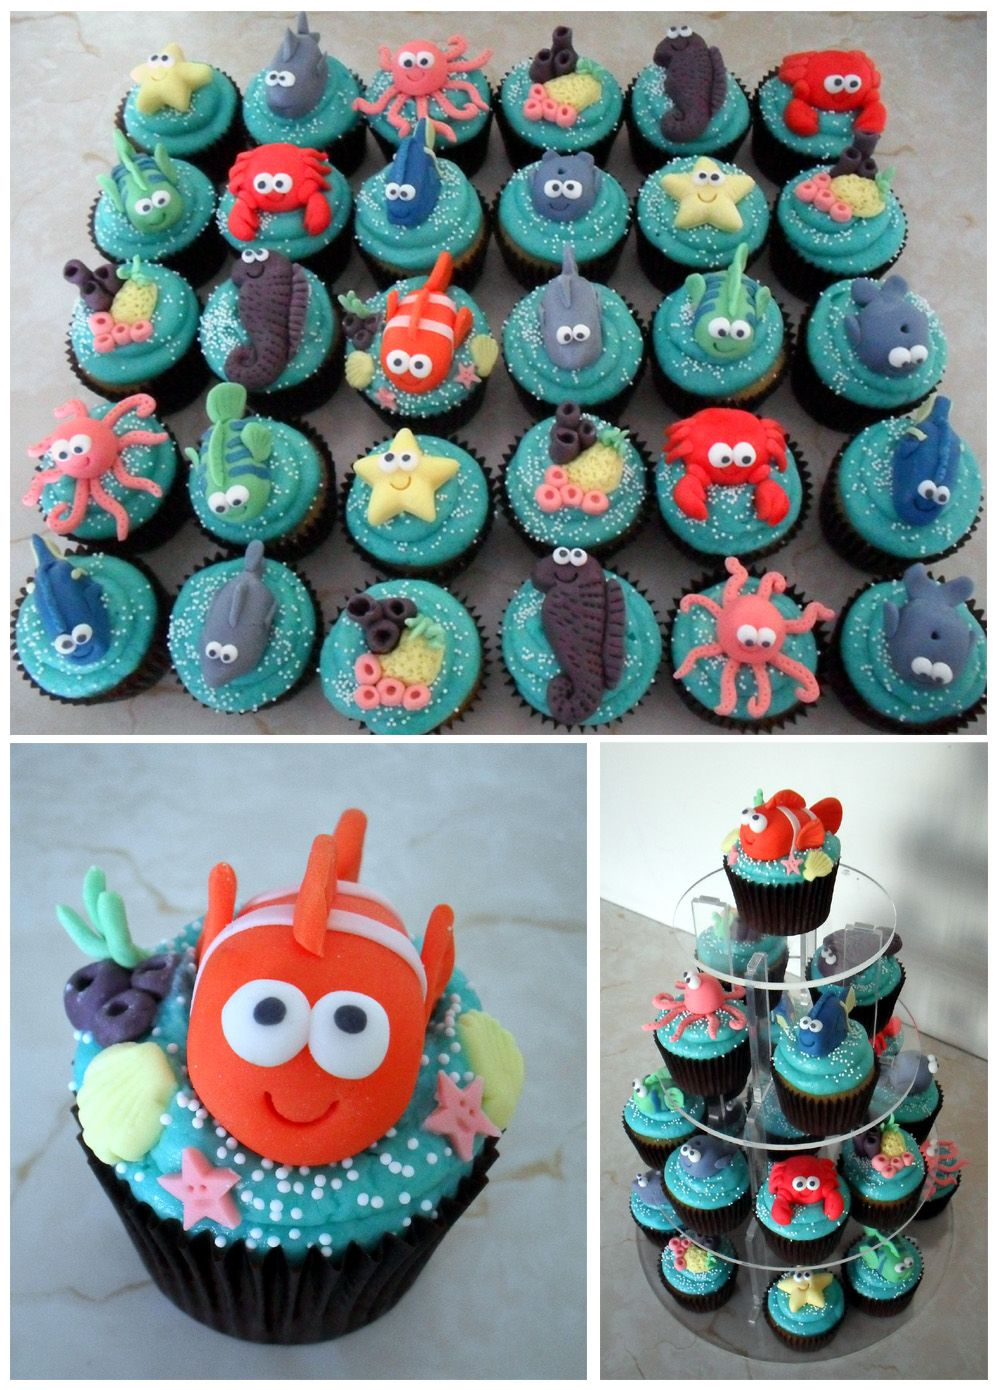 Sprinkles & Crumbs: Under the sea themed cupcakes